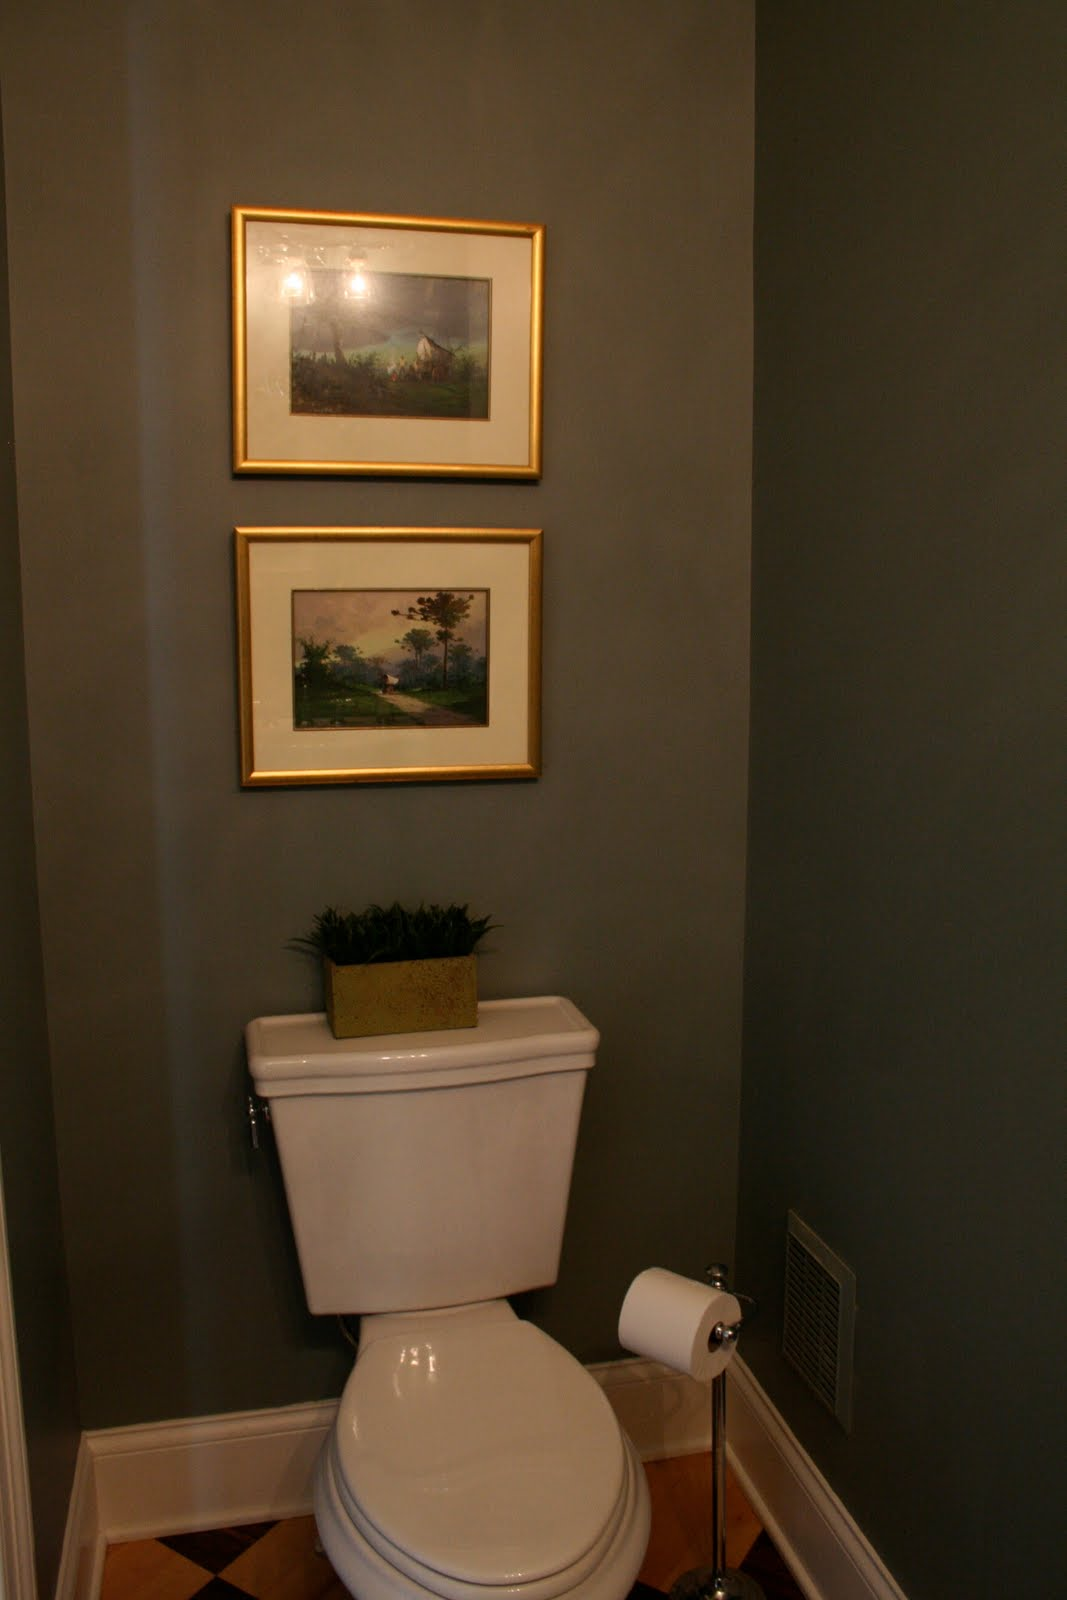 Design dump house 5 powder room before after for Small wc room design